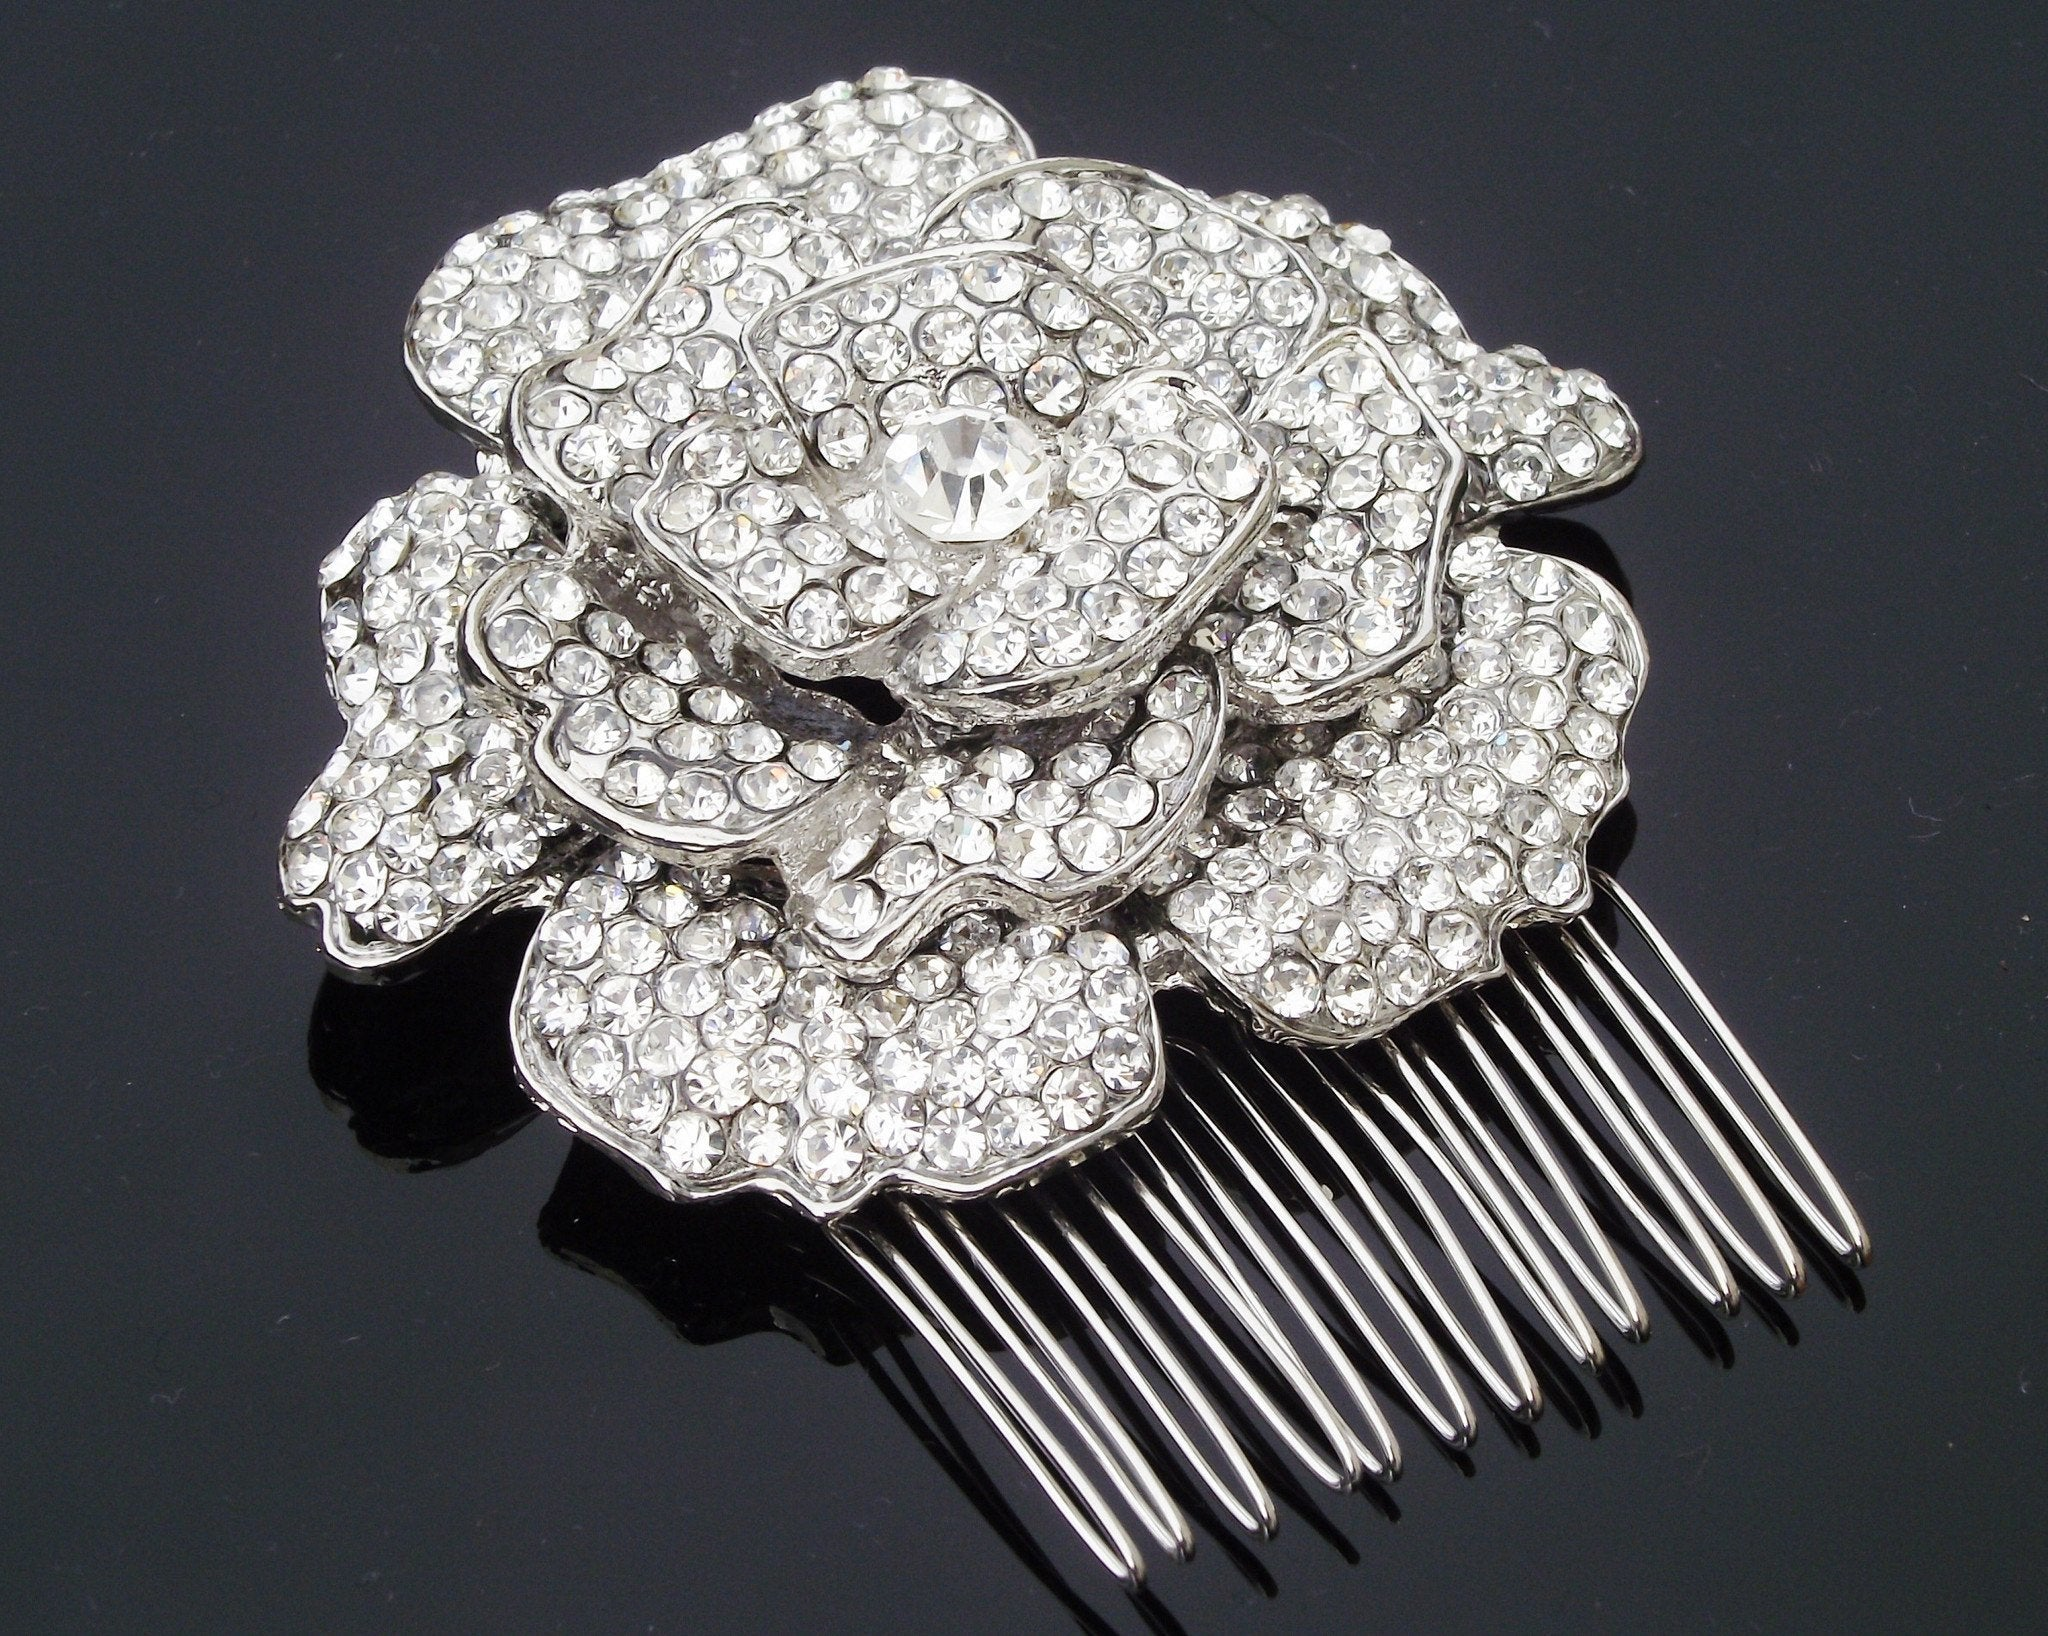 Wedding Hair Combs - Antique Style Crystal Flower Hair Comb, Floral Headpiece, Elaine